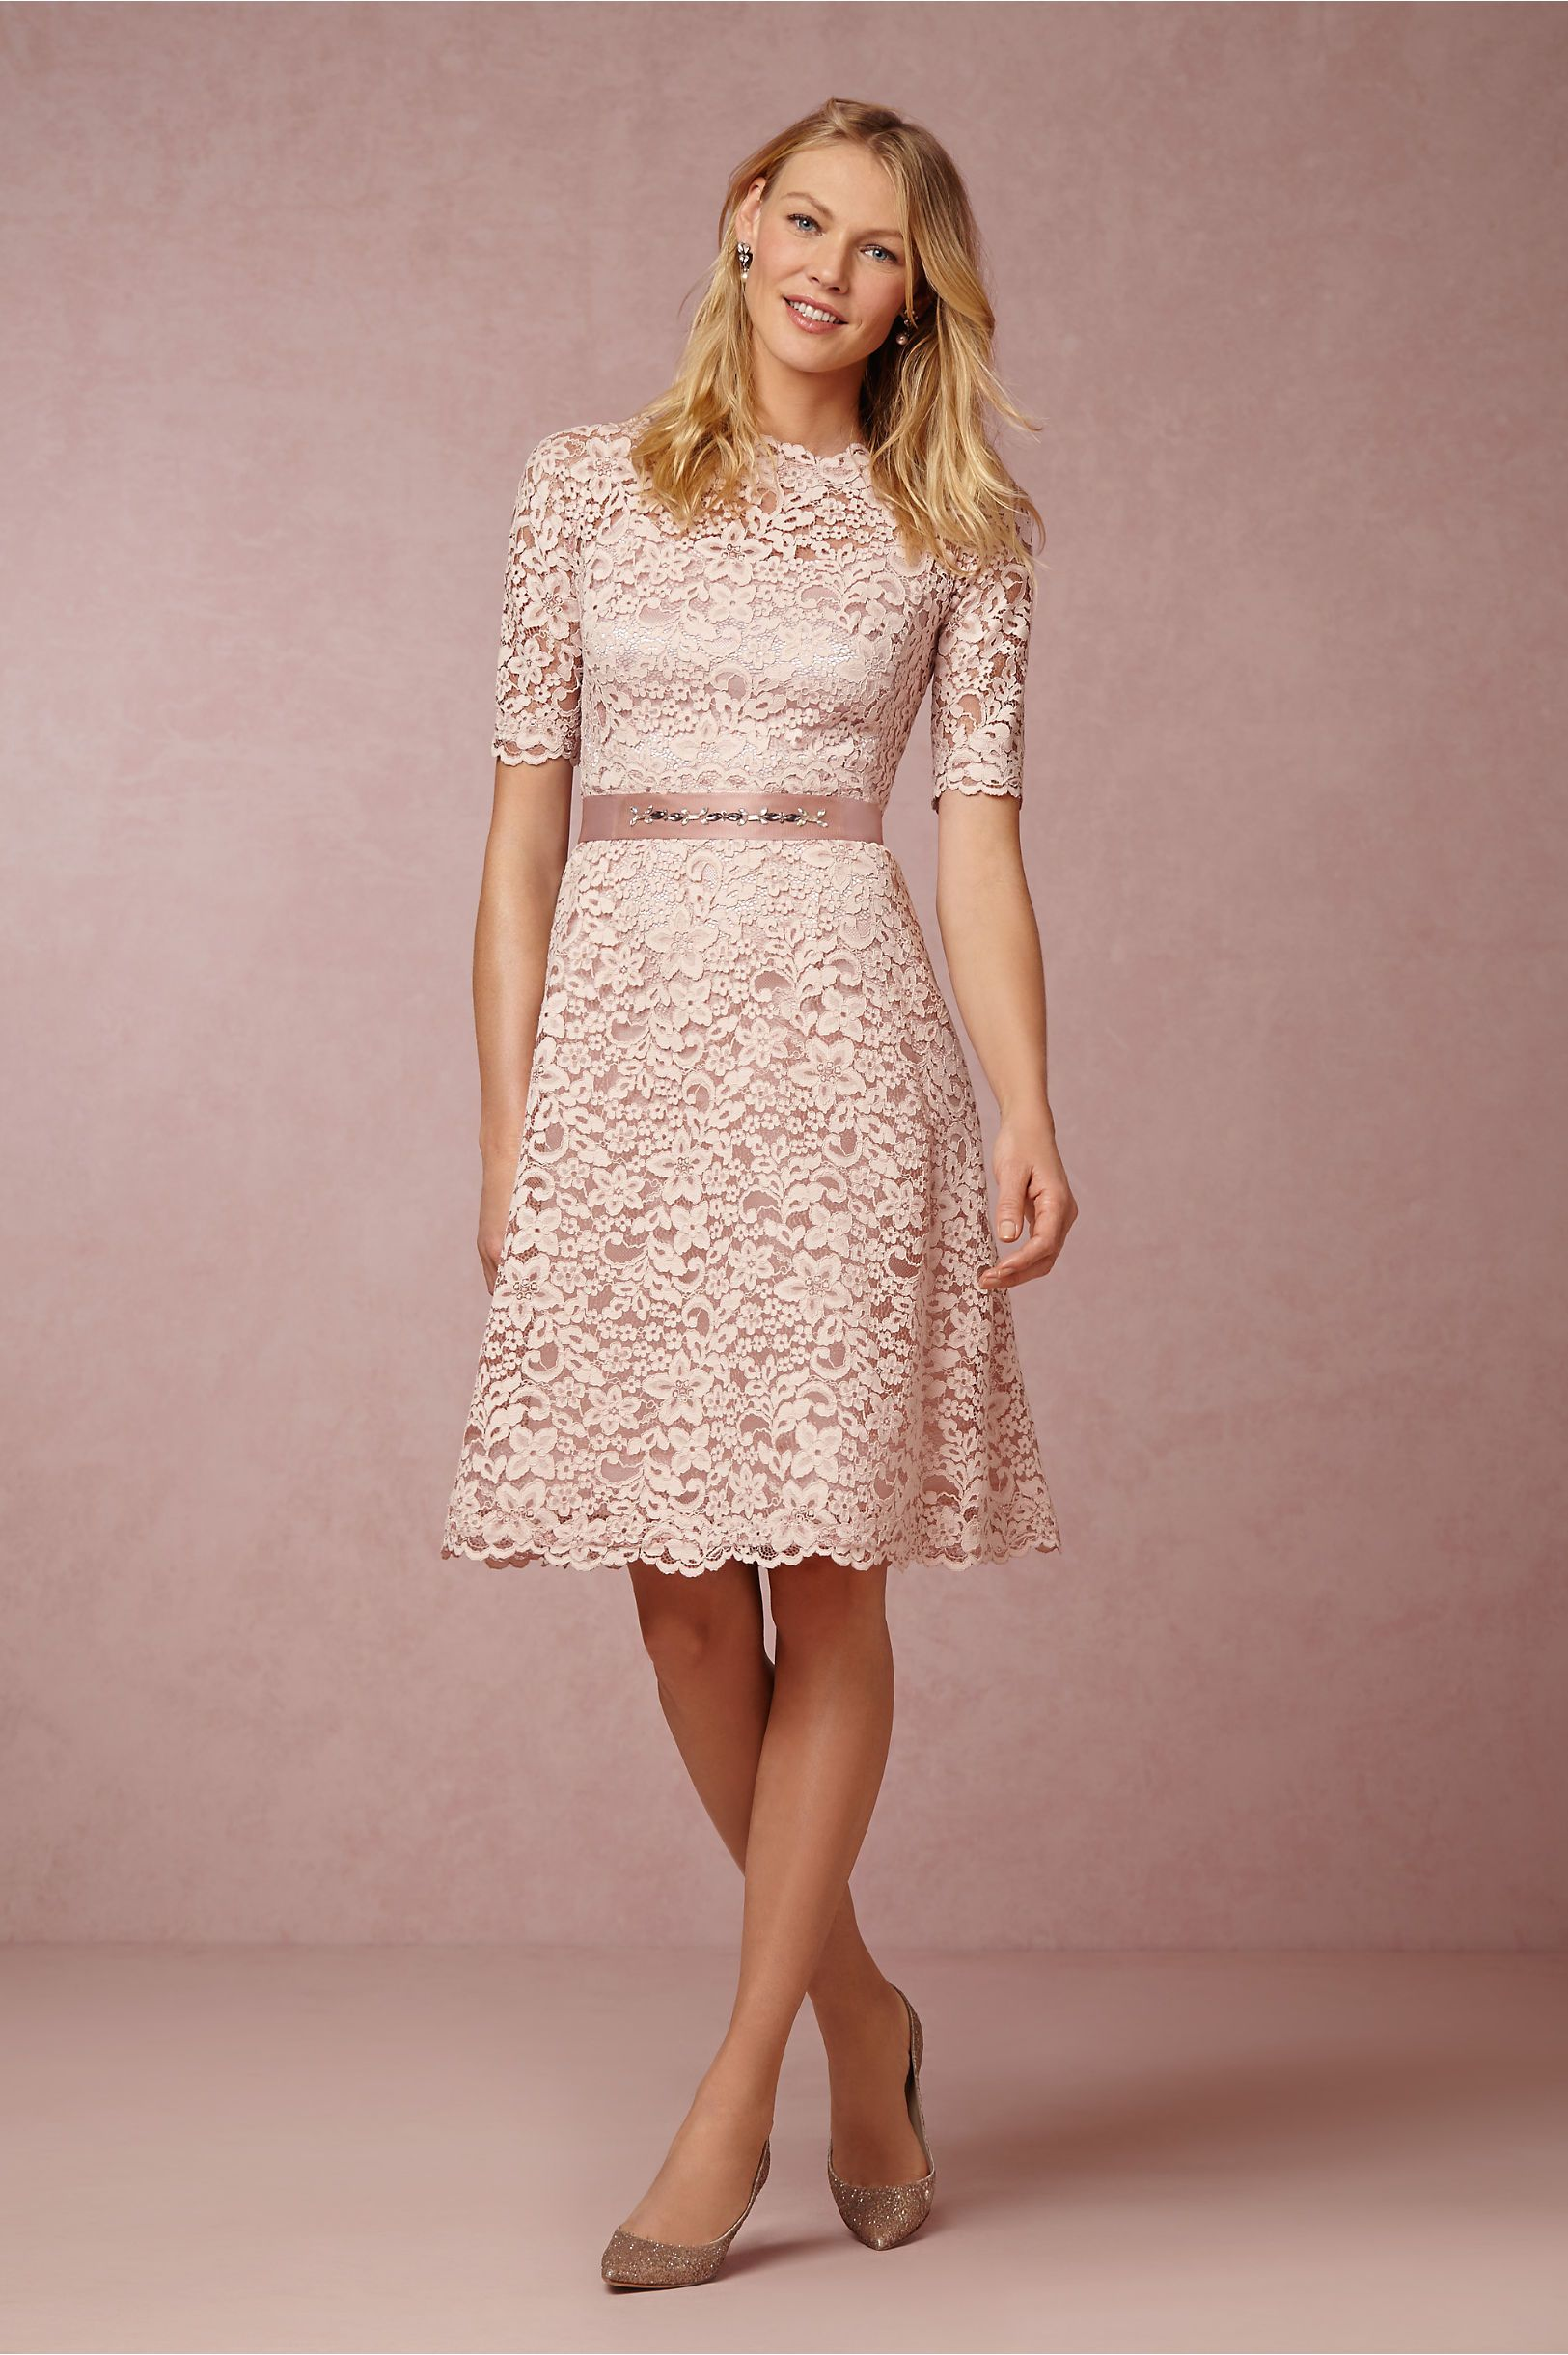 Evelyn Dress in Bridal Party & Guests View All Dresses at BHLDN ...